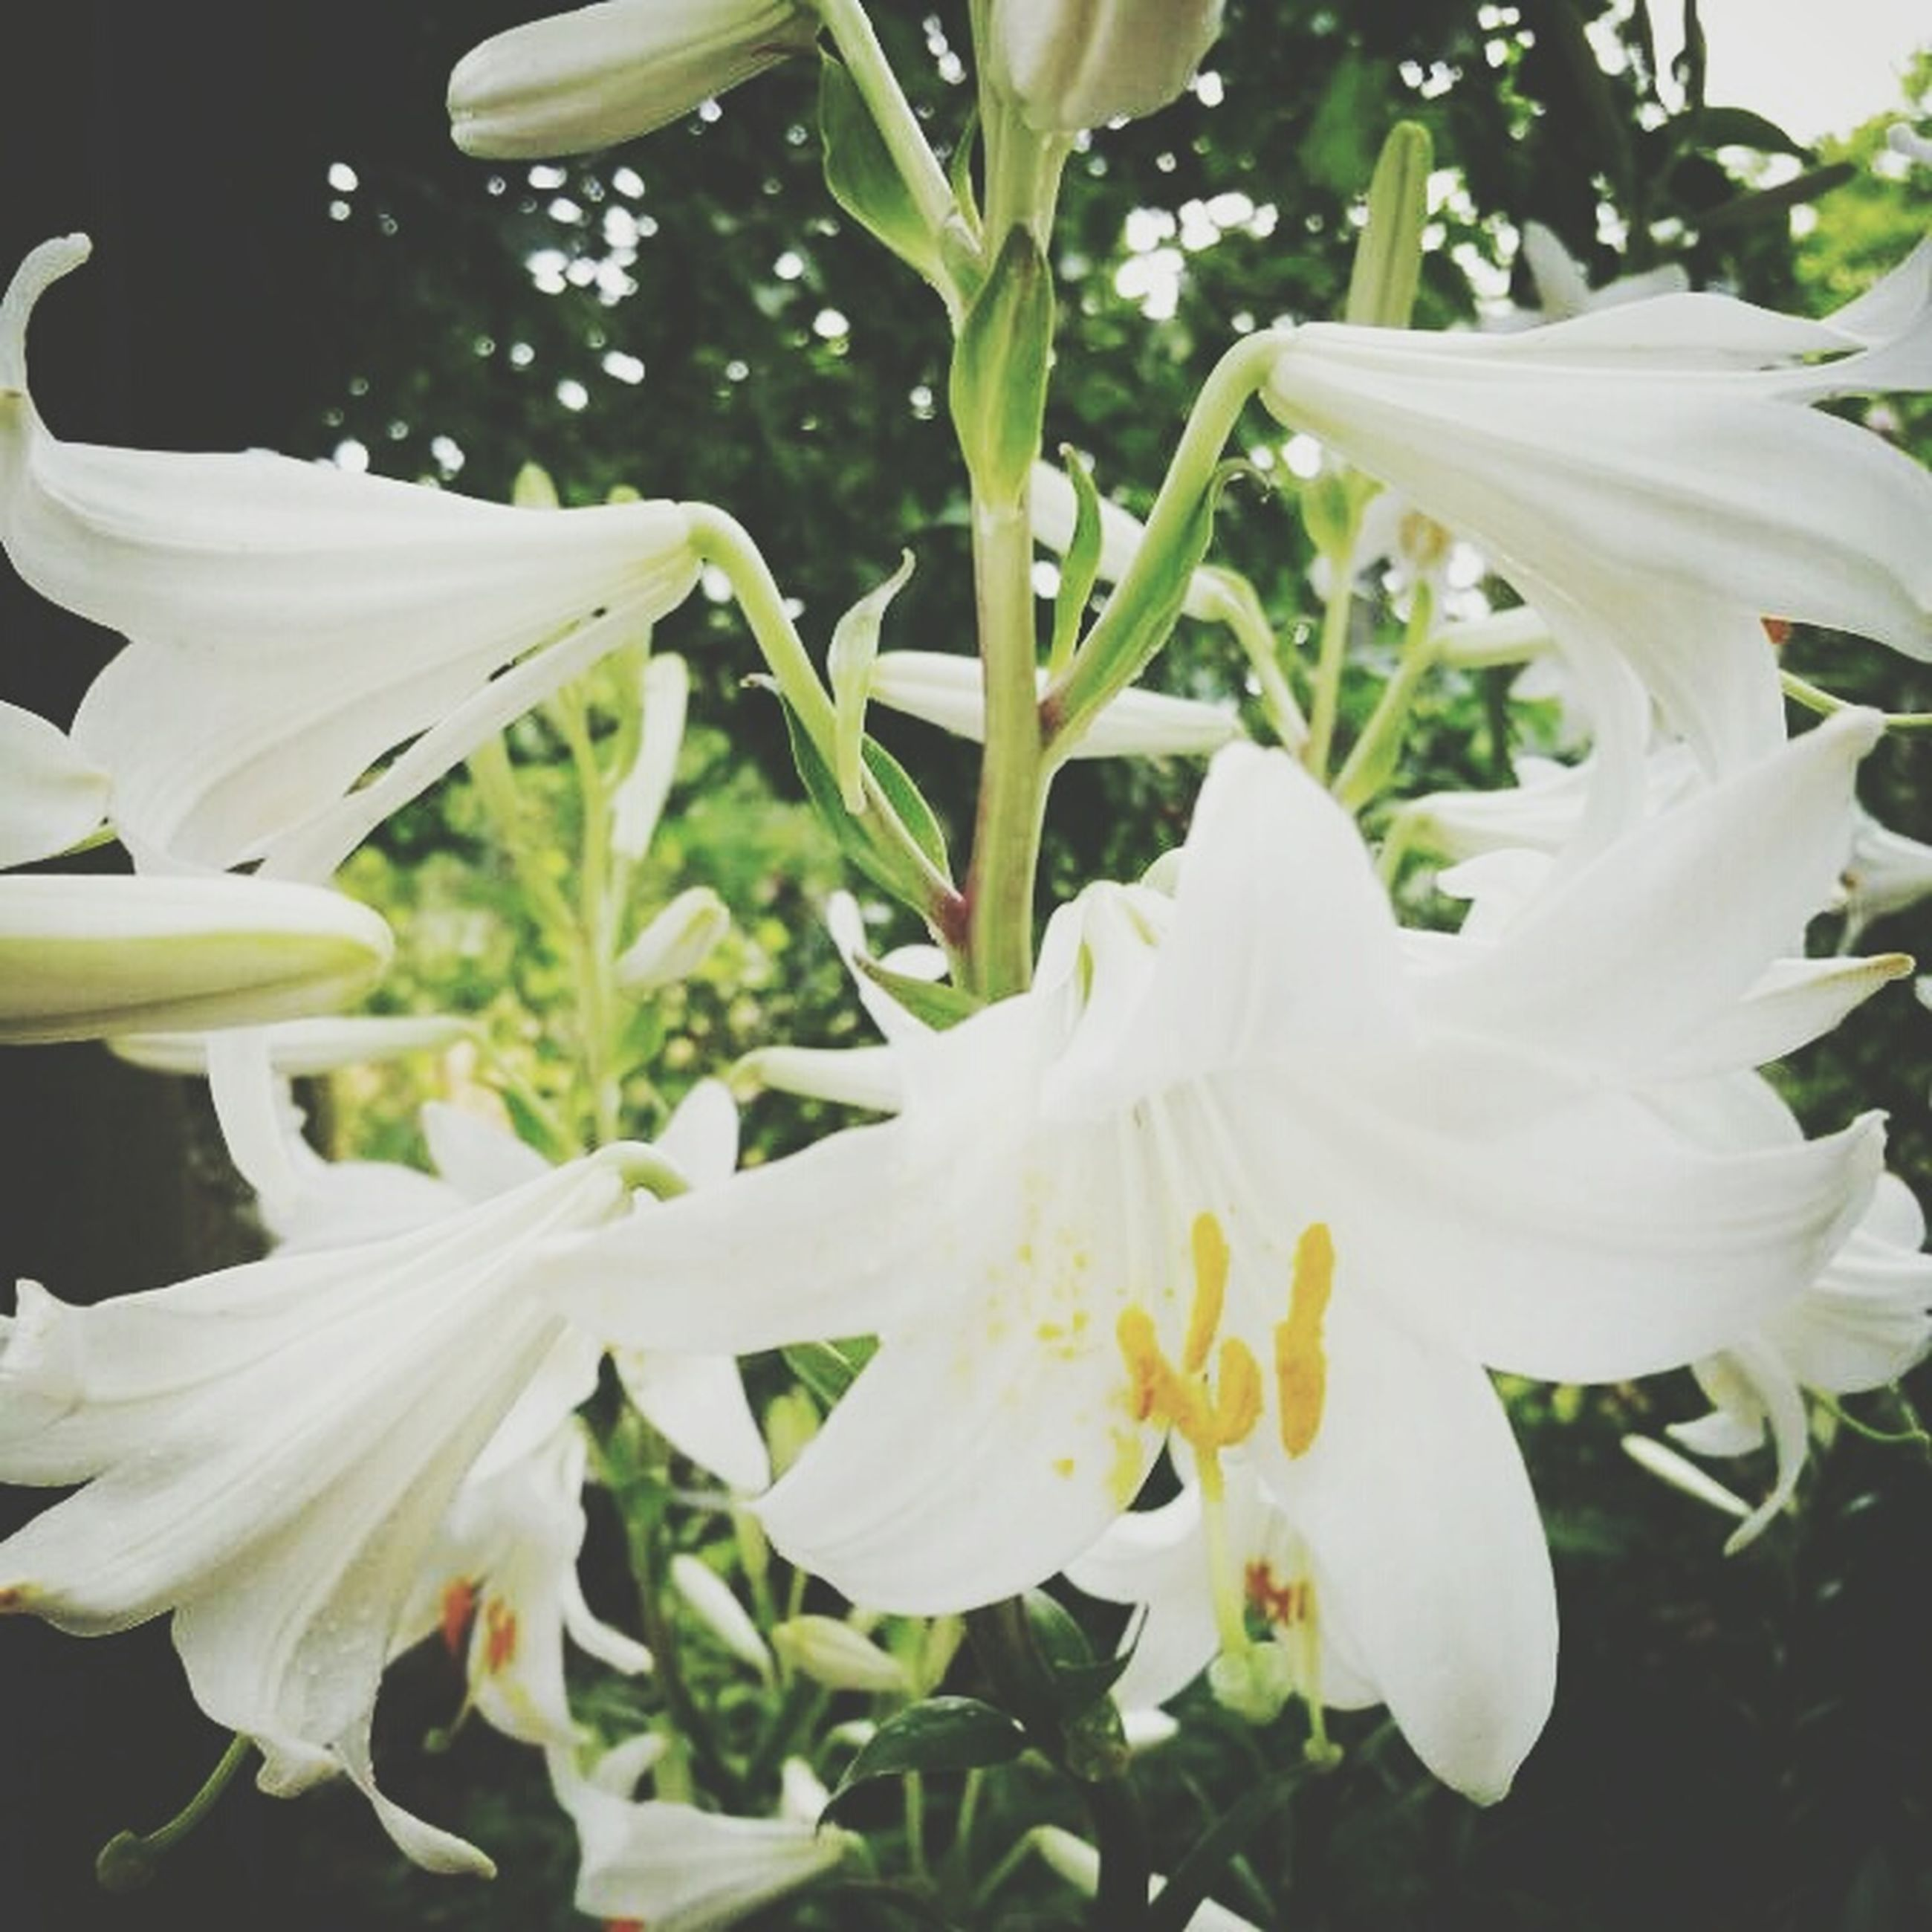 flower, petal, white color, flower head, freshness, fragility, growth, beauty in nature, blooming, plant, white, close-up, nature, leaf, pollen, in bloom, no people, stamen, day, outdoors